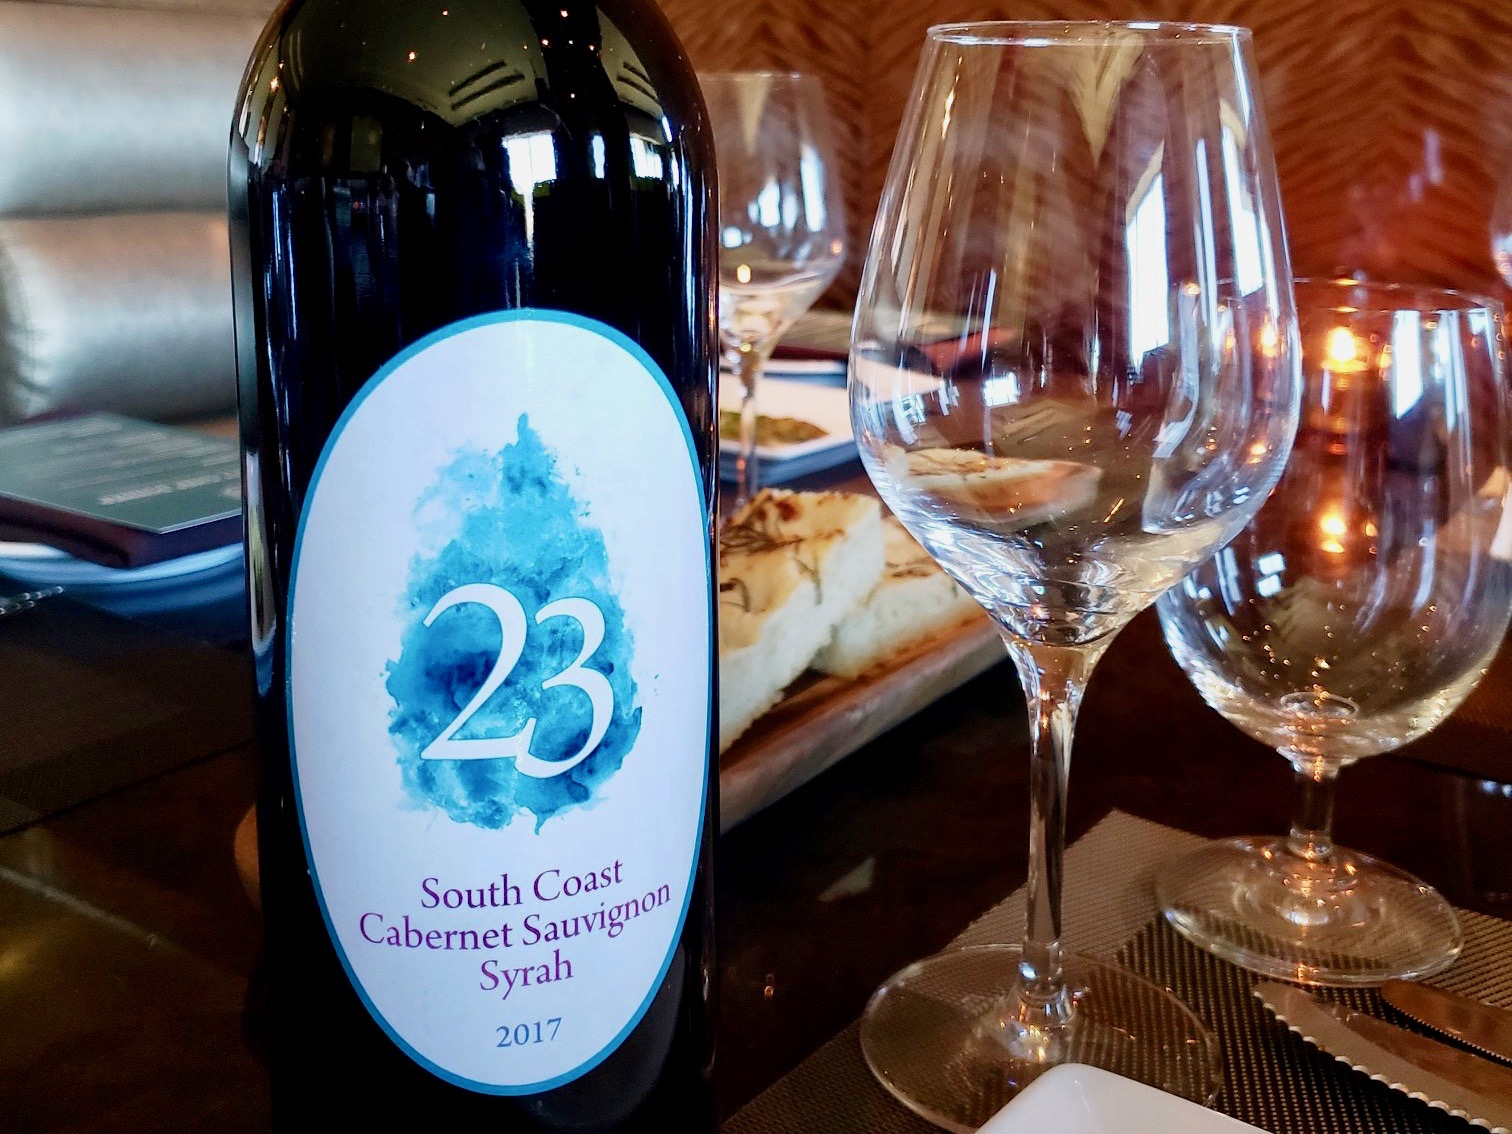 Jamul Indian Village serves unique brand of wine at casino